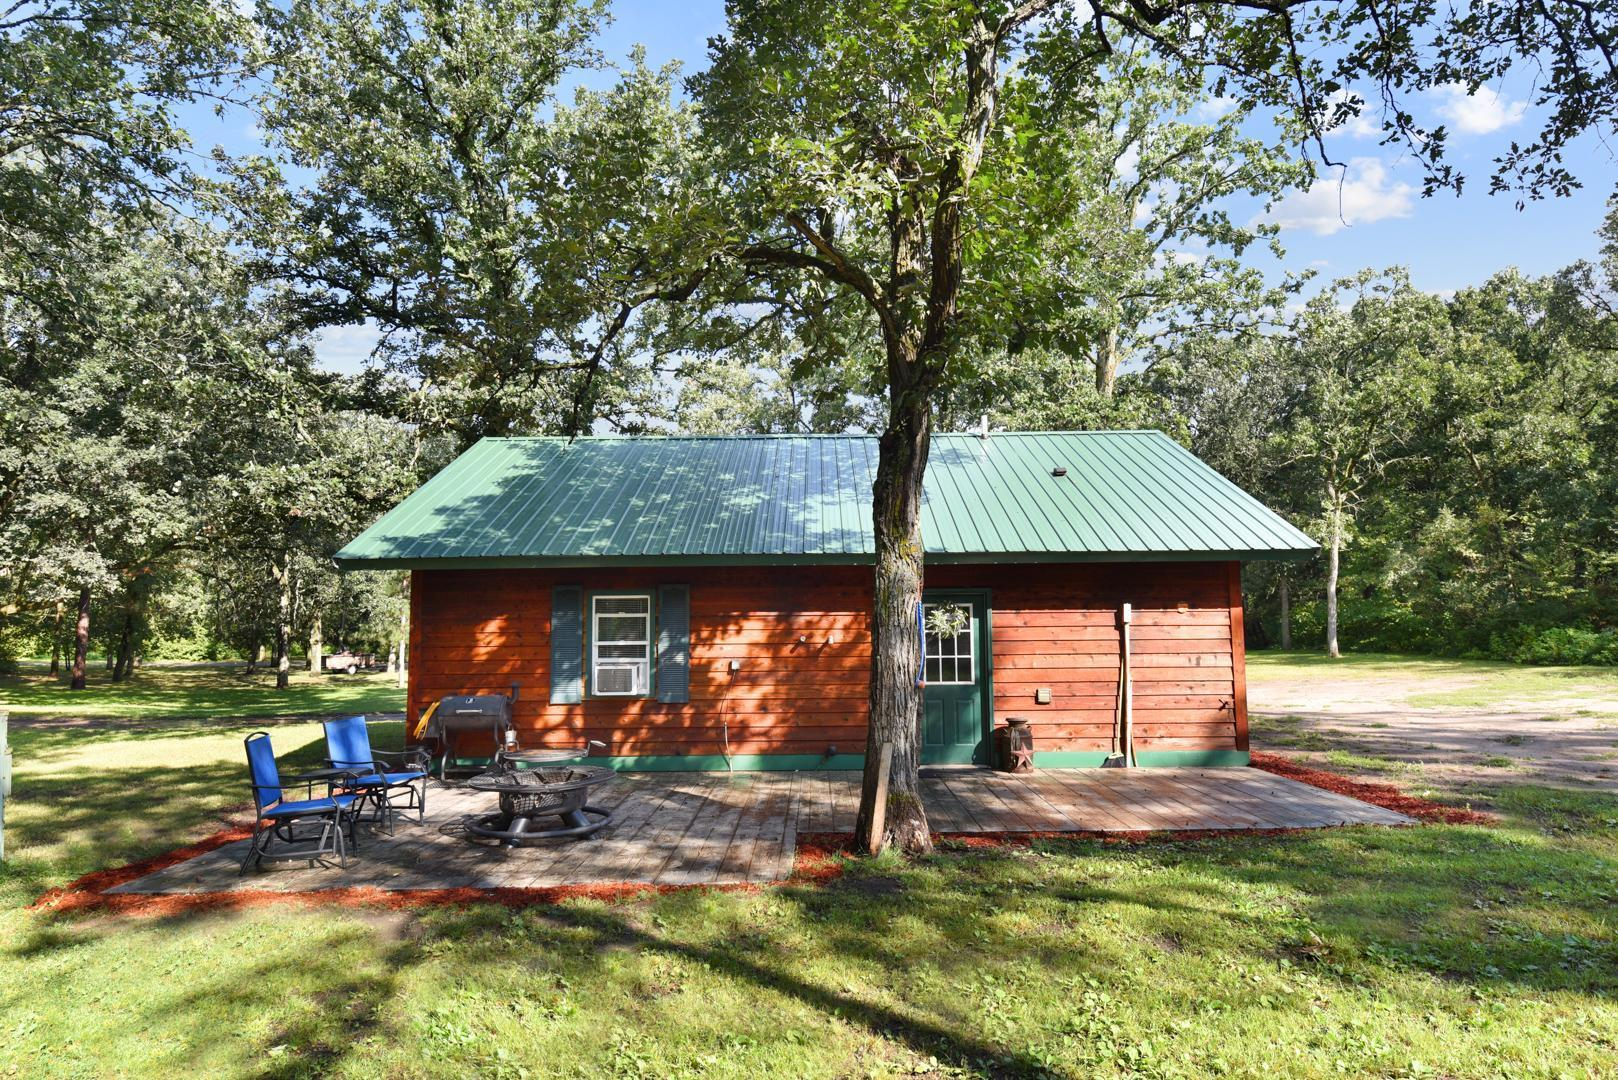 Country living yet close to town.  Don't miss this two bedroom, one bath home on a 2.5 acre wooded lot. Home features a new metal roof, wood siding, main floor laundry, deck and ceramic tile. Recent renovations make this home move in ready!